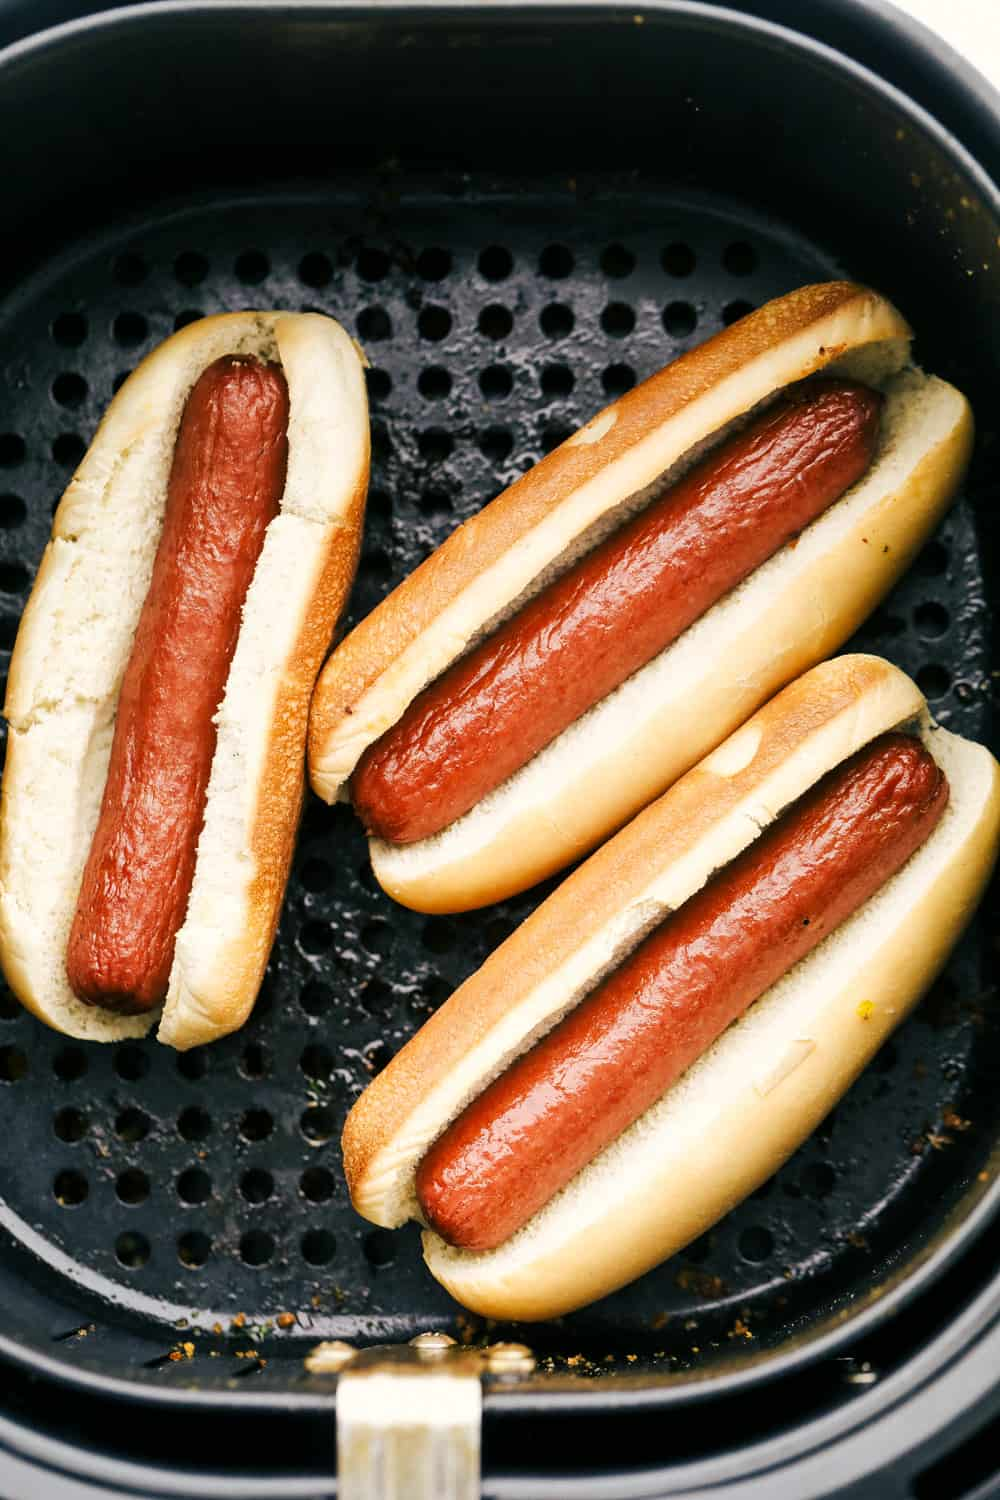 Hot dogs in buns in an air fryer.